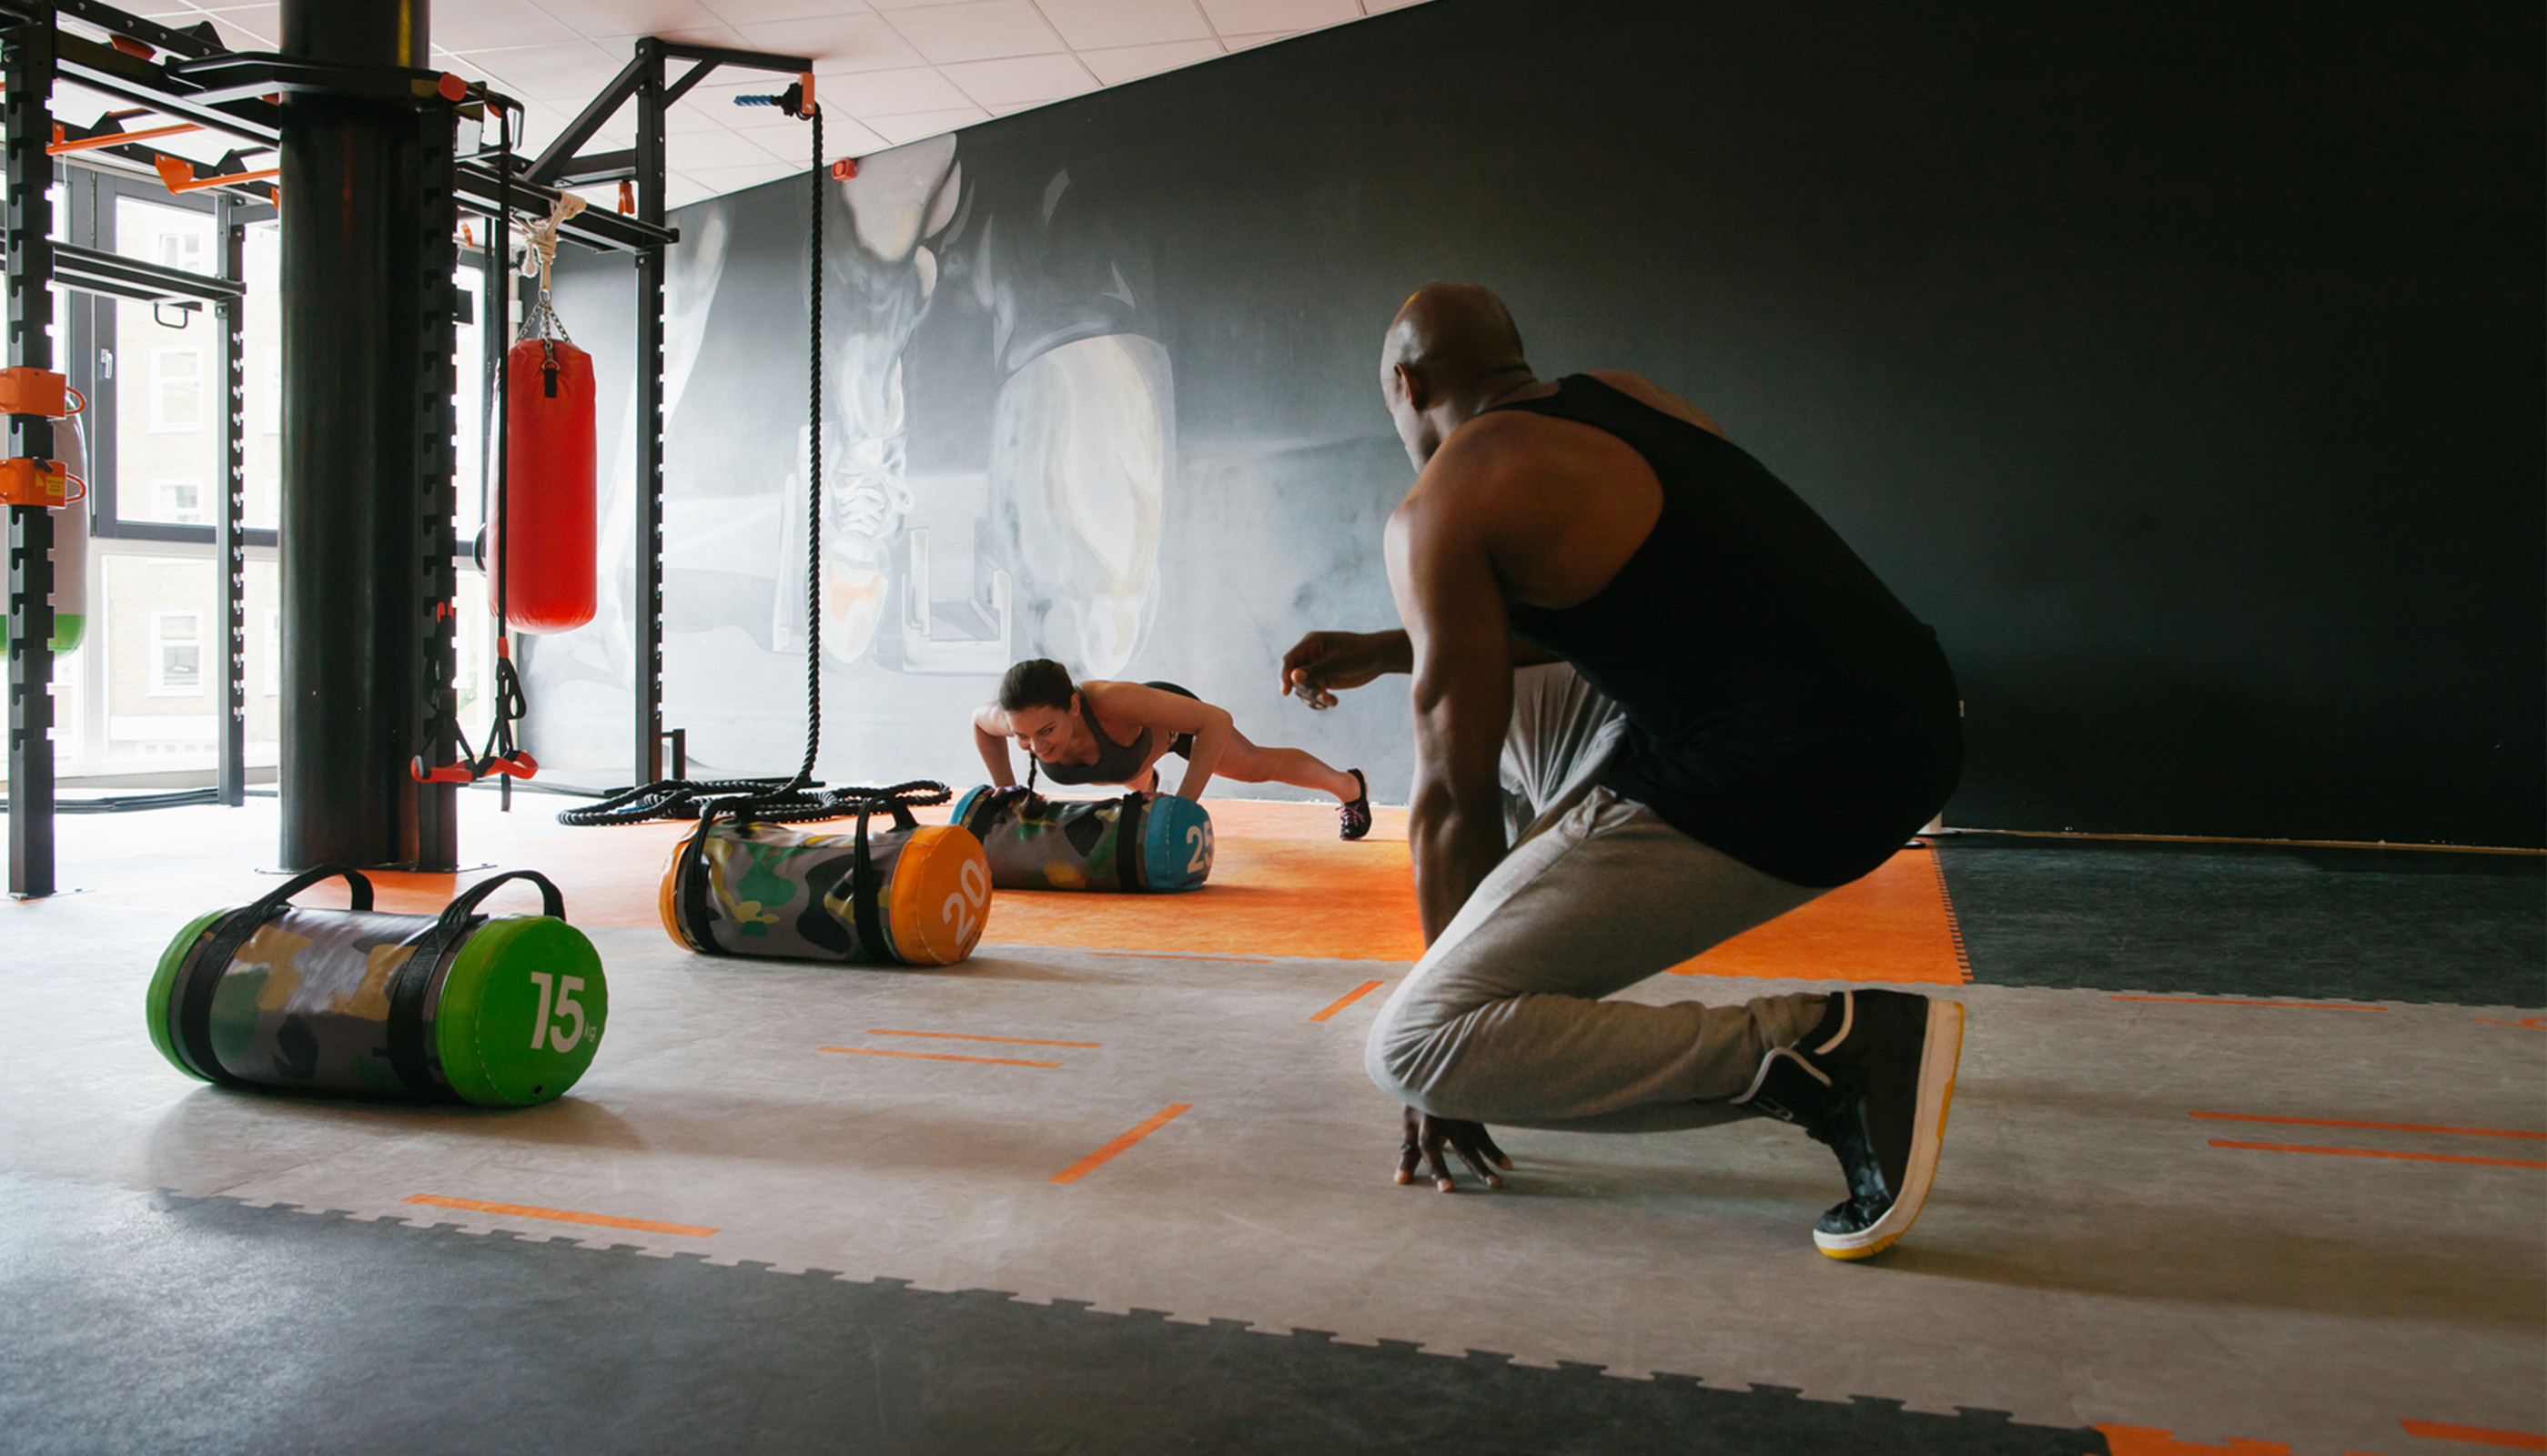 SilverShield® Technology – A Breakthrough in Keeping Fitness Facilities Clean